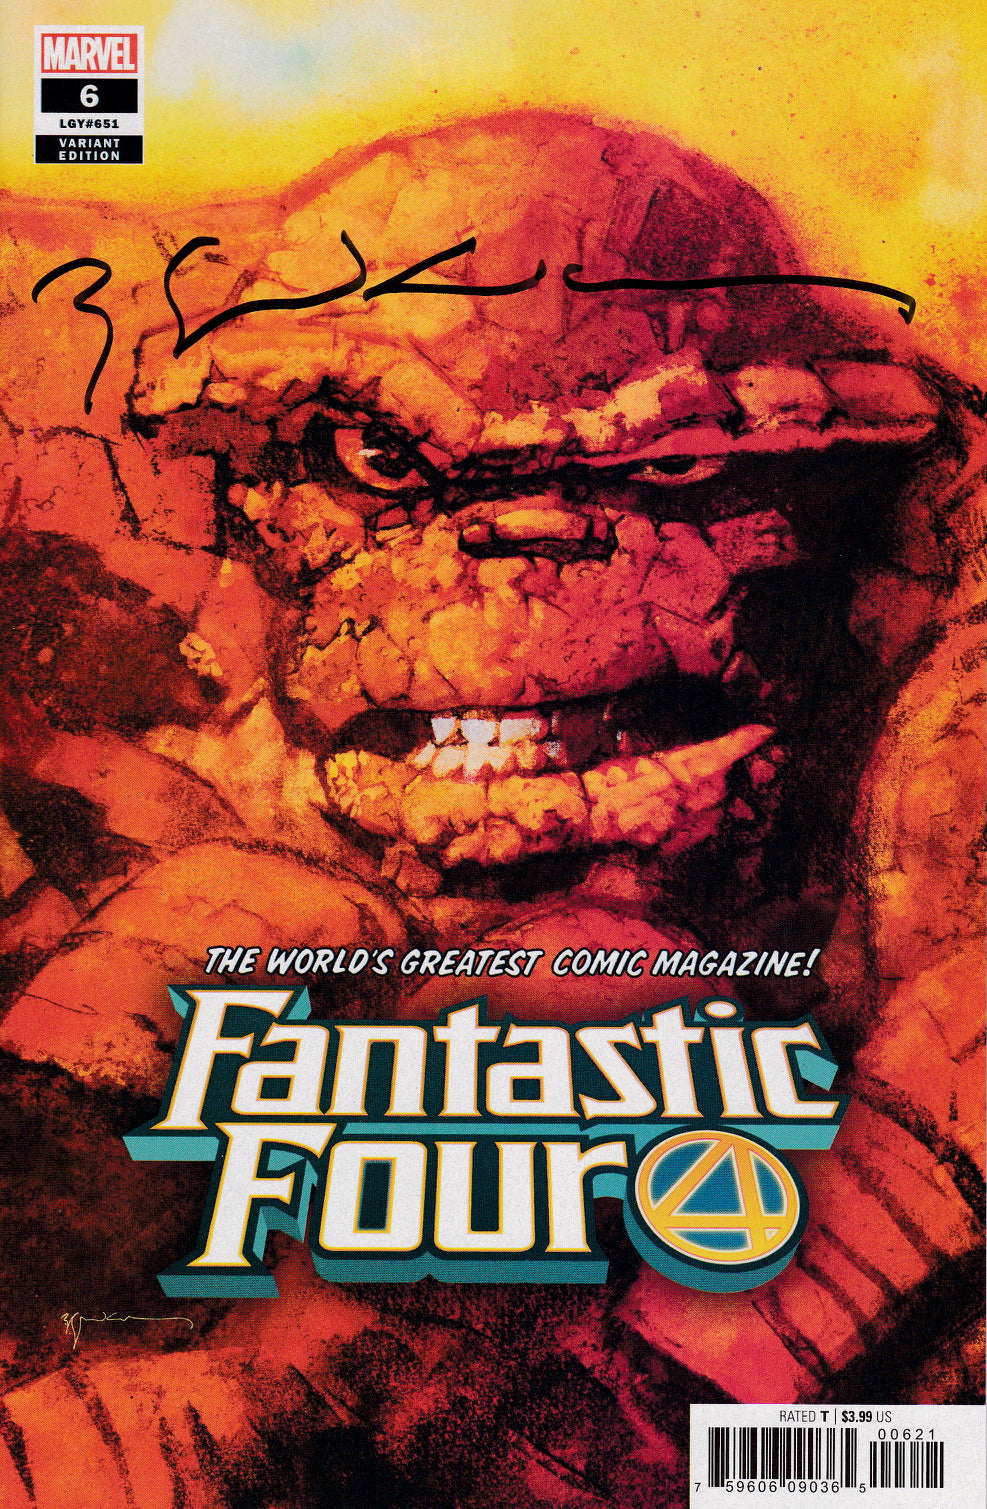 Fantastic Four #6 The Thing Portrait Variant